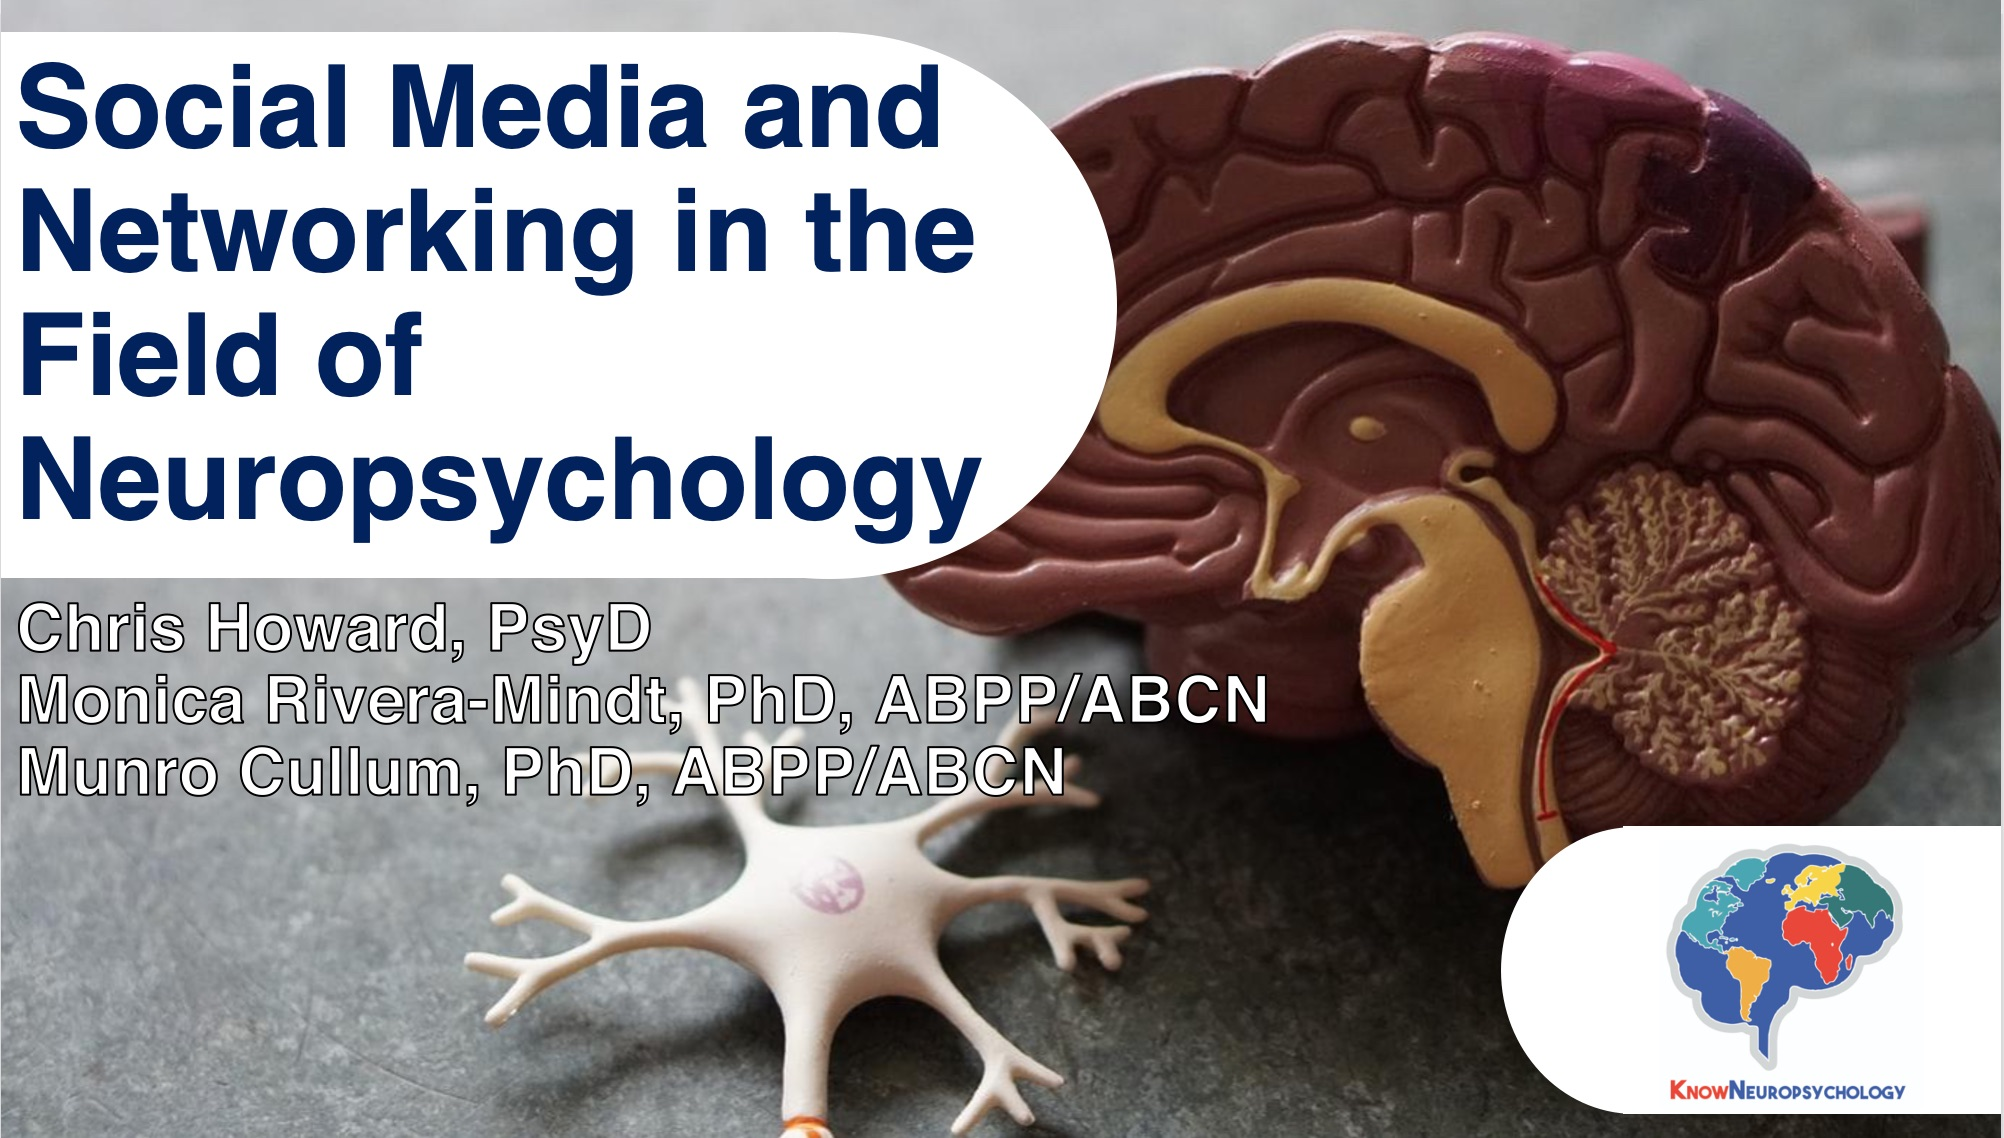 Social media and networking in the field of neuropsychology by Dr. Chris Howard, Dr. Monica Rivera-Mindt, and Dr. Munro Cullum